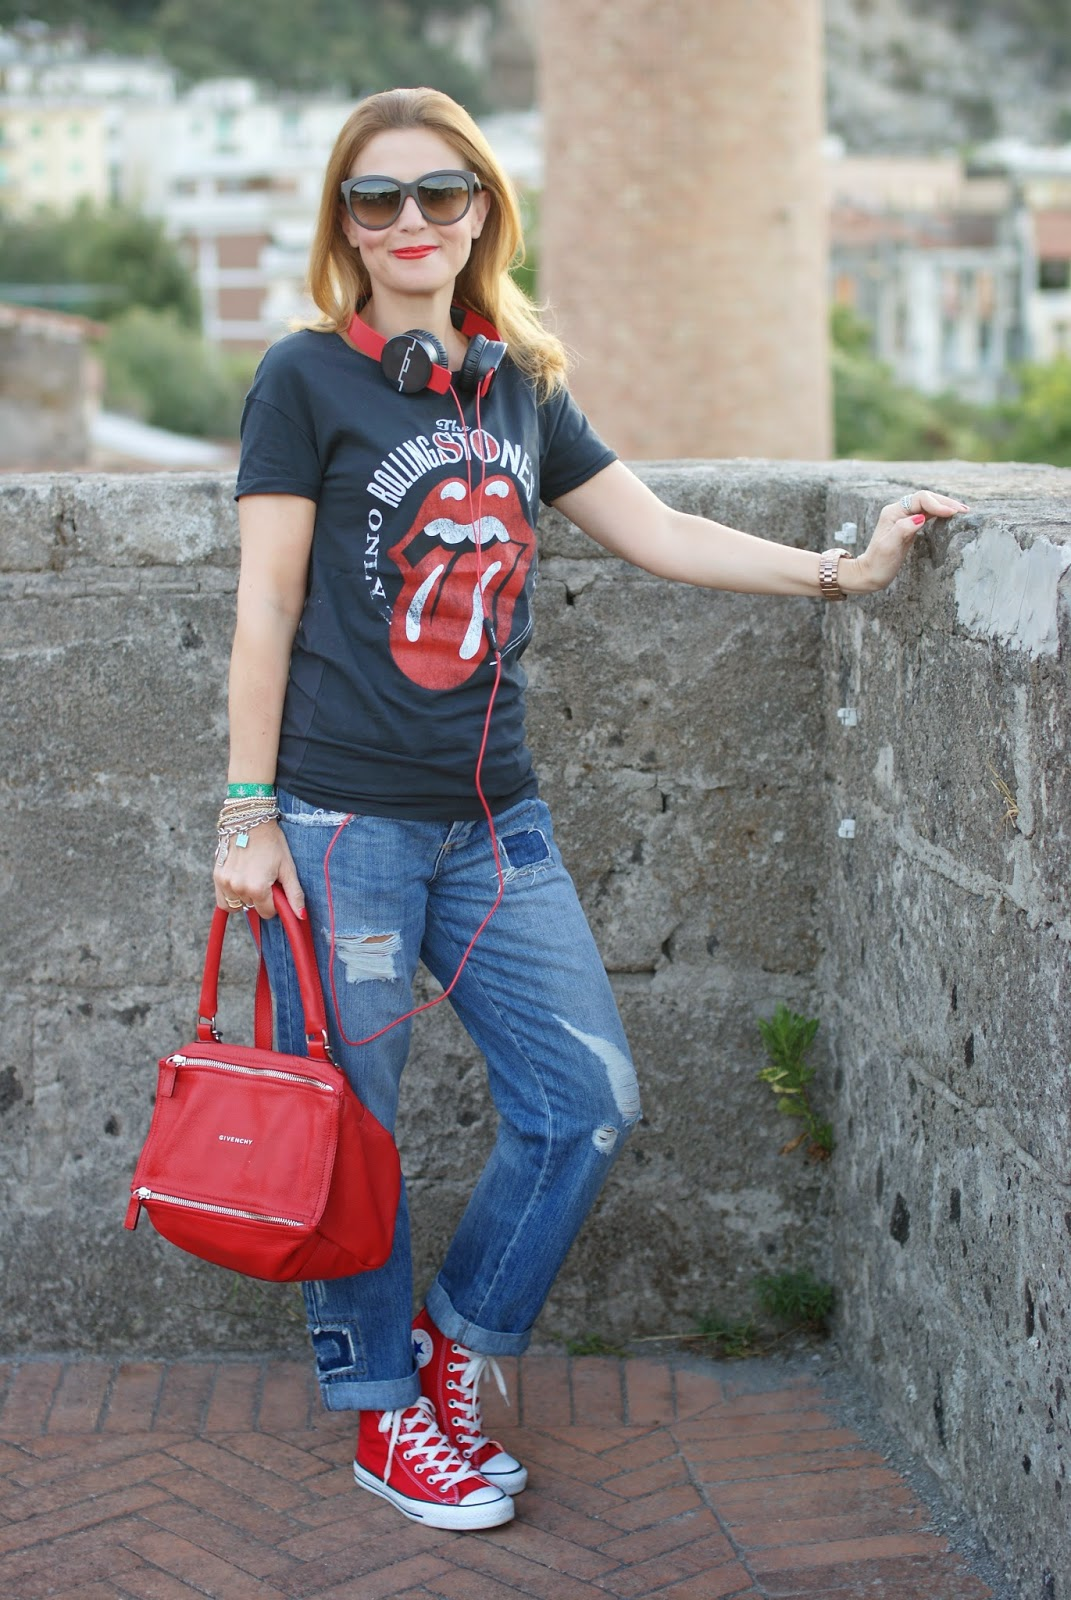 Rolling Stones mouth t-shirt, red converse sneakers, Sol Republic headphones, Fashion and Cookies, fashion blogger